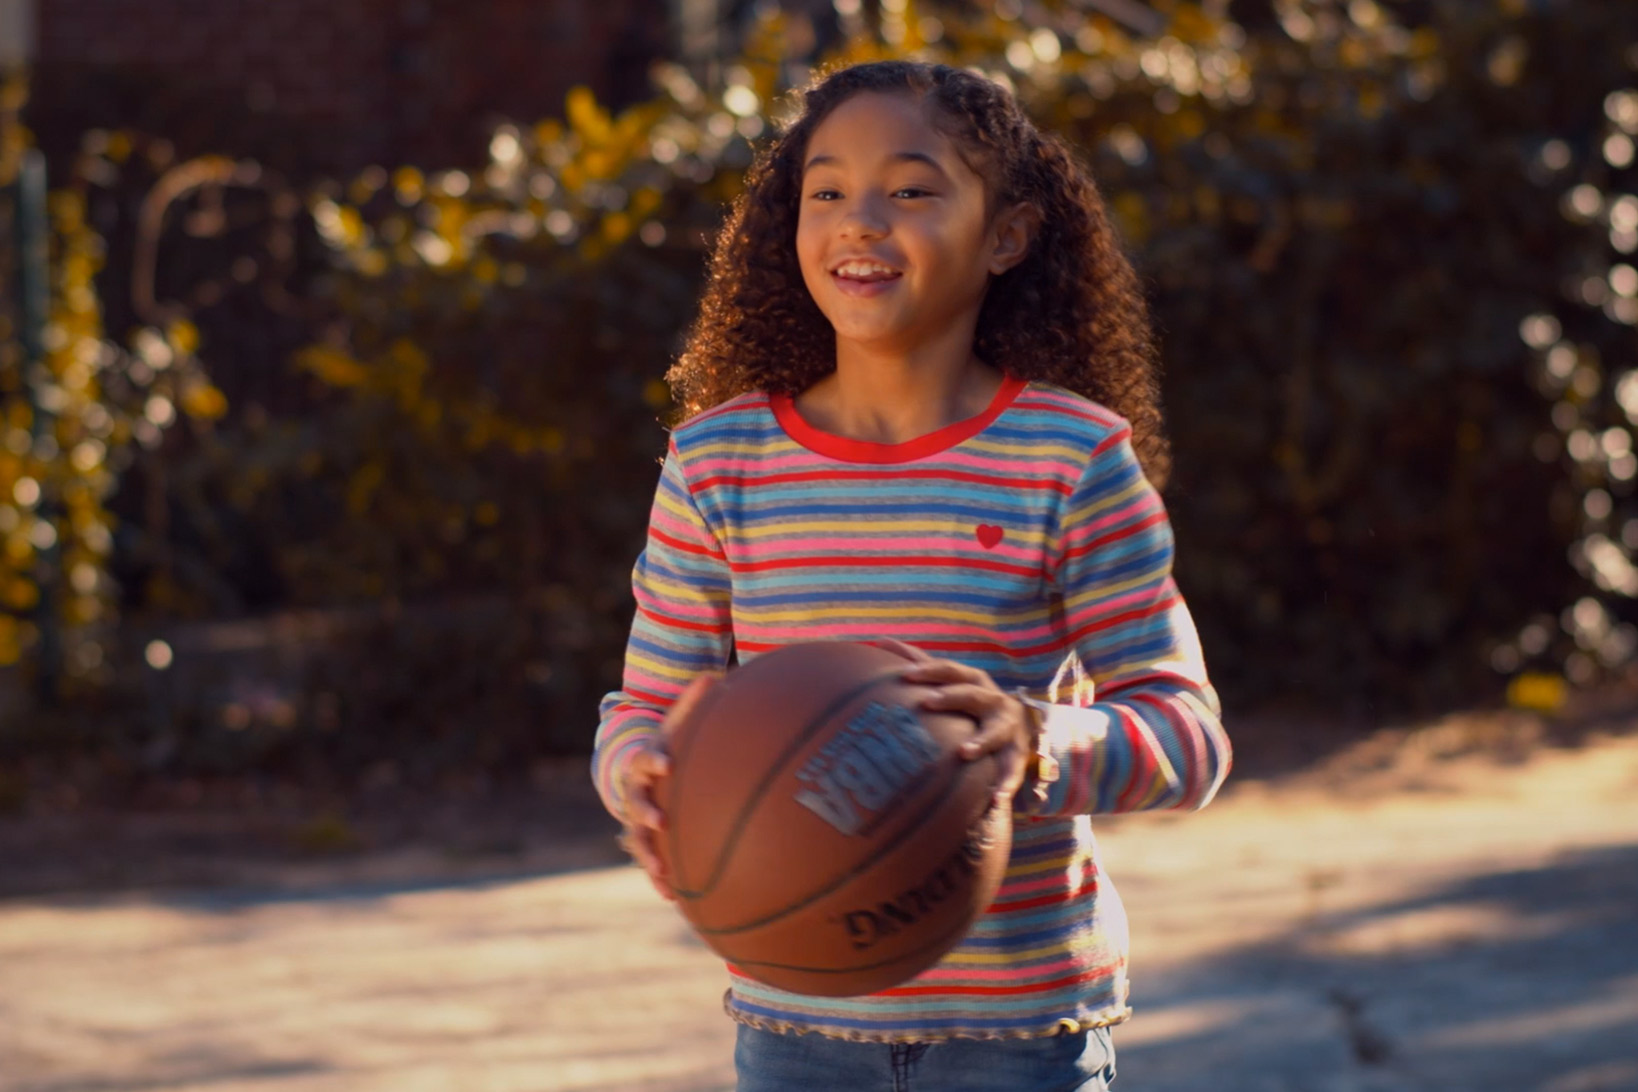 A little girl in a colorful shirt smiling while getting ready to pass a basketball to someone out of view outside on a sunny day.